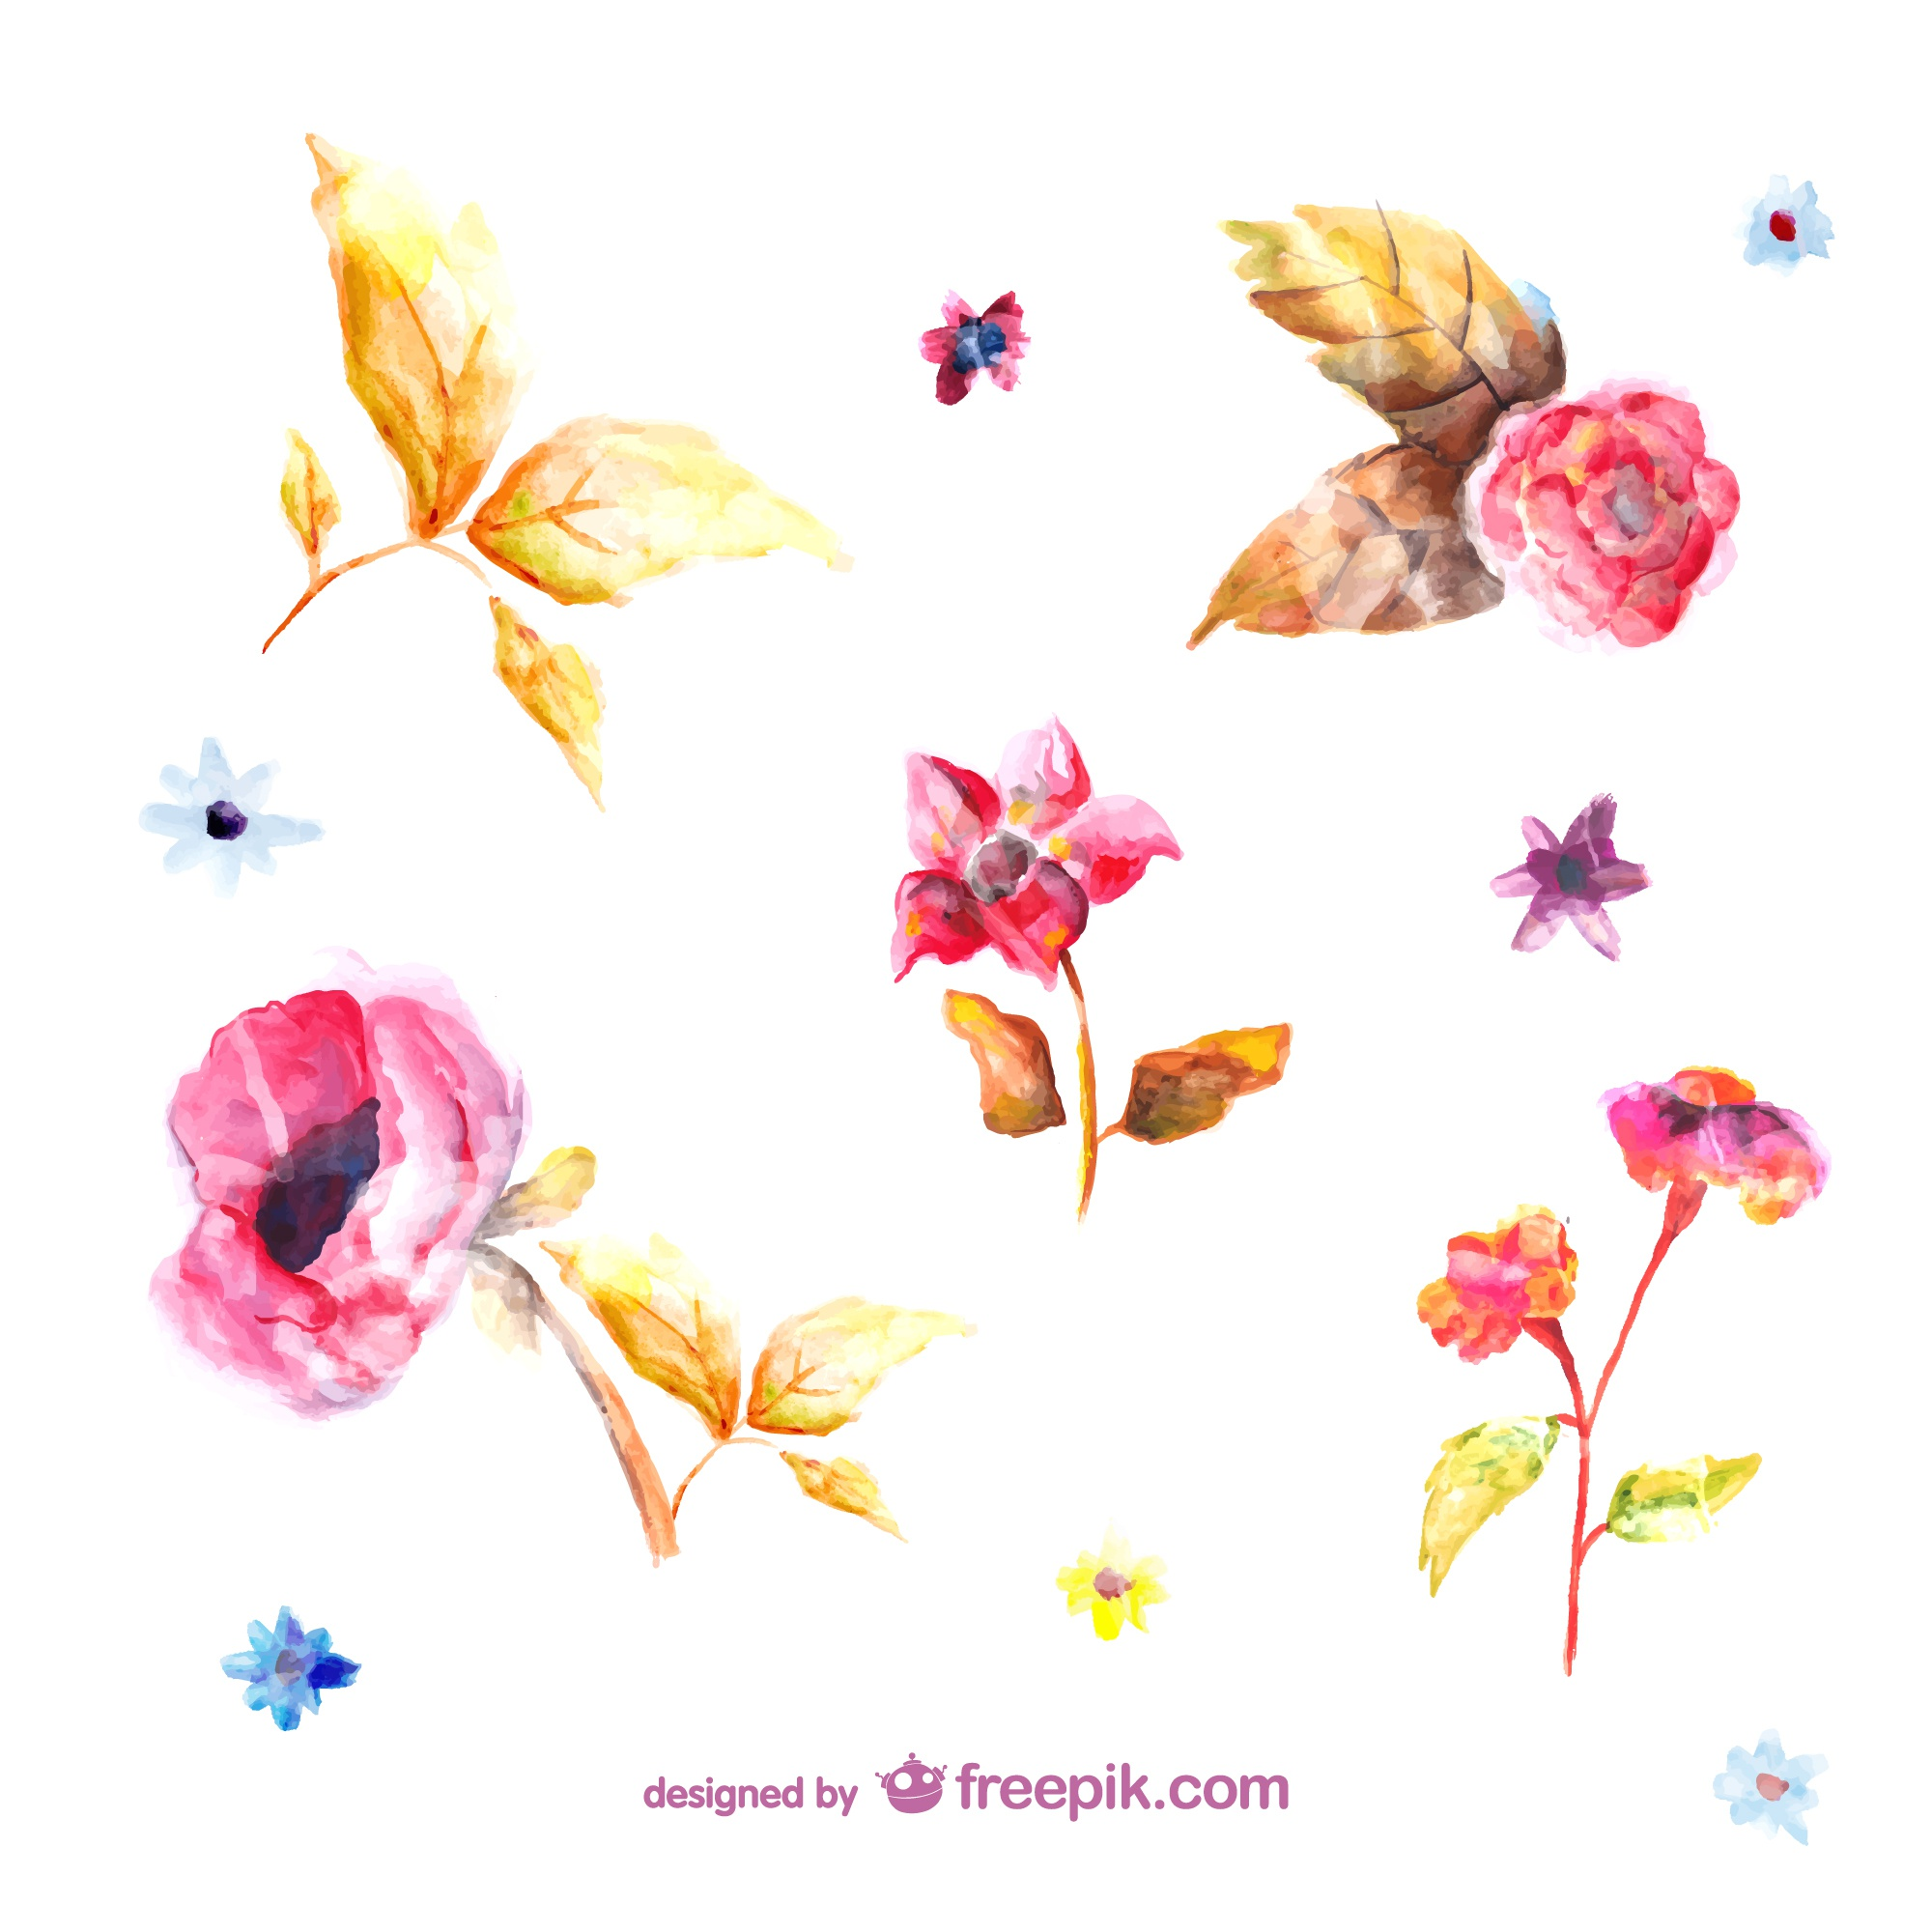 Fleurs à l'aquarelle illustrations